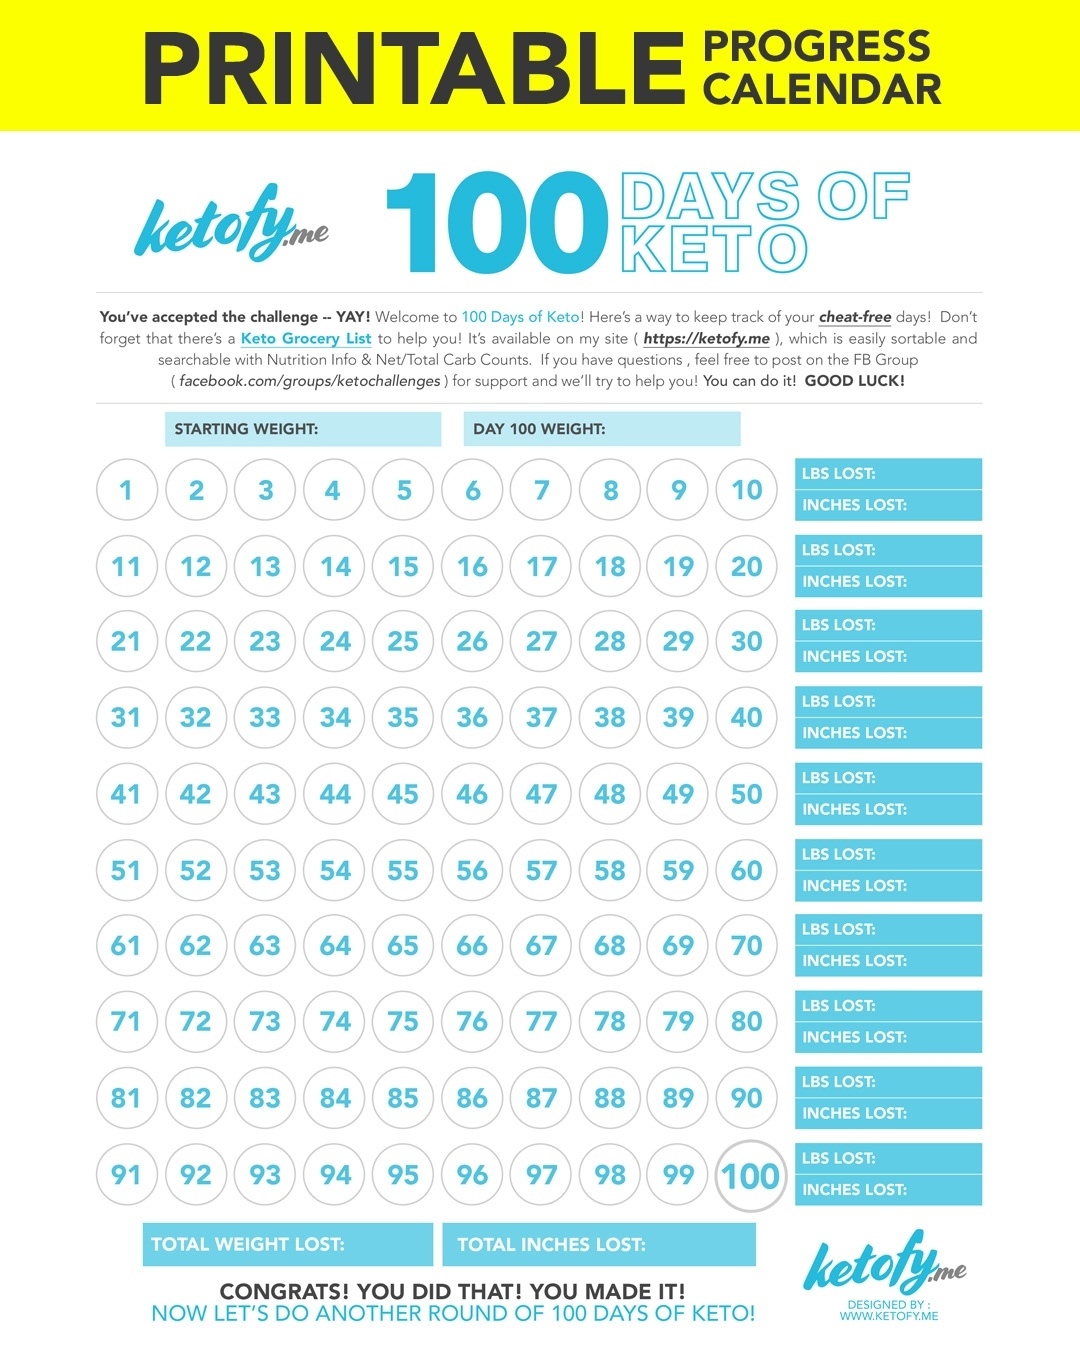 Keto ~ Fy Me | Cut Carbs, Not Flavor! • 100 Days Of Keto Challenge_Countdown Calendar 100 Days